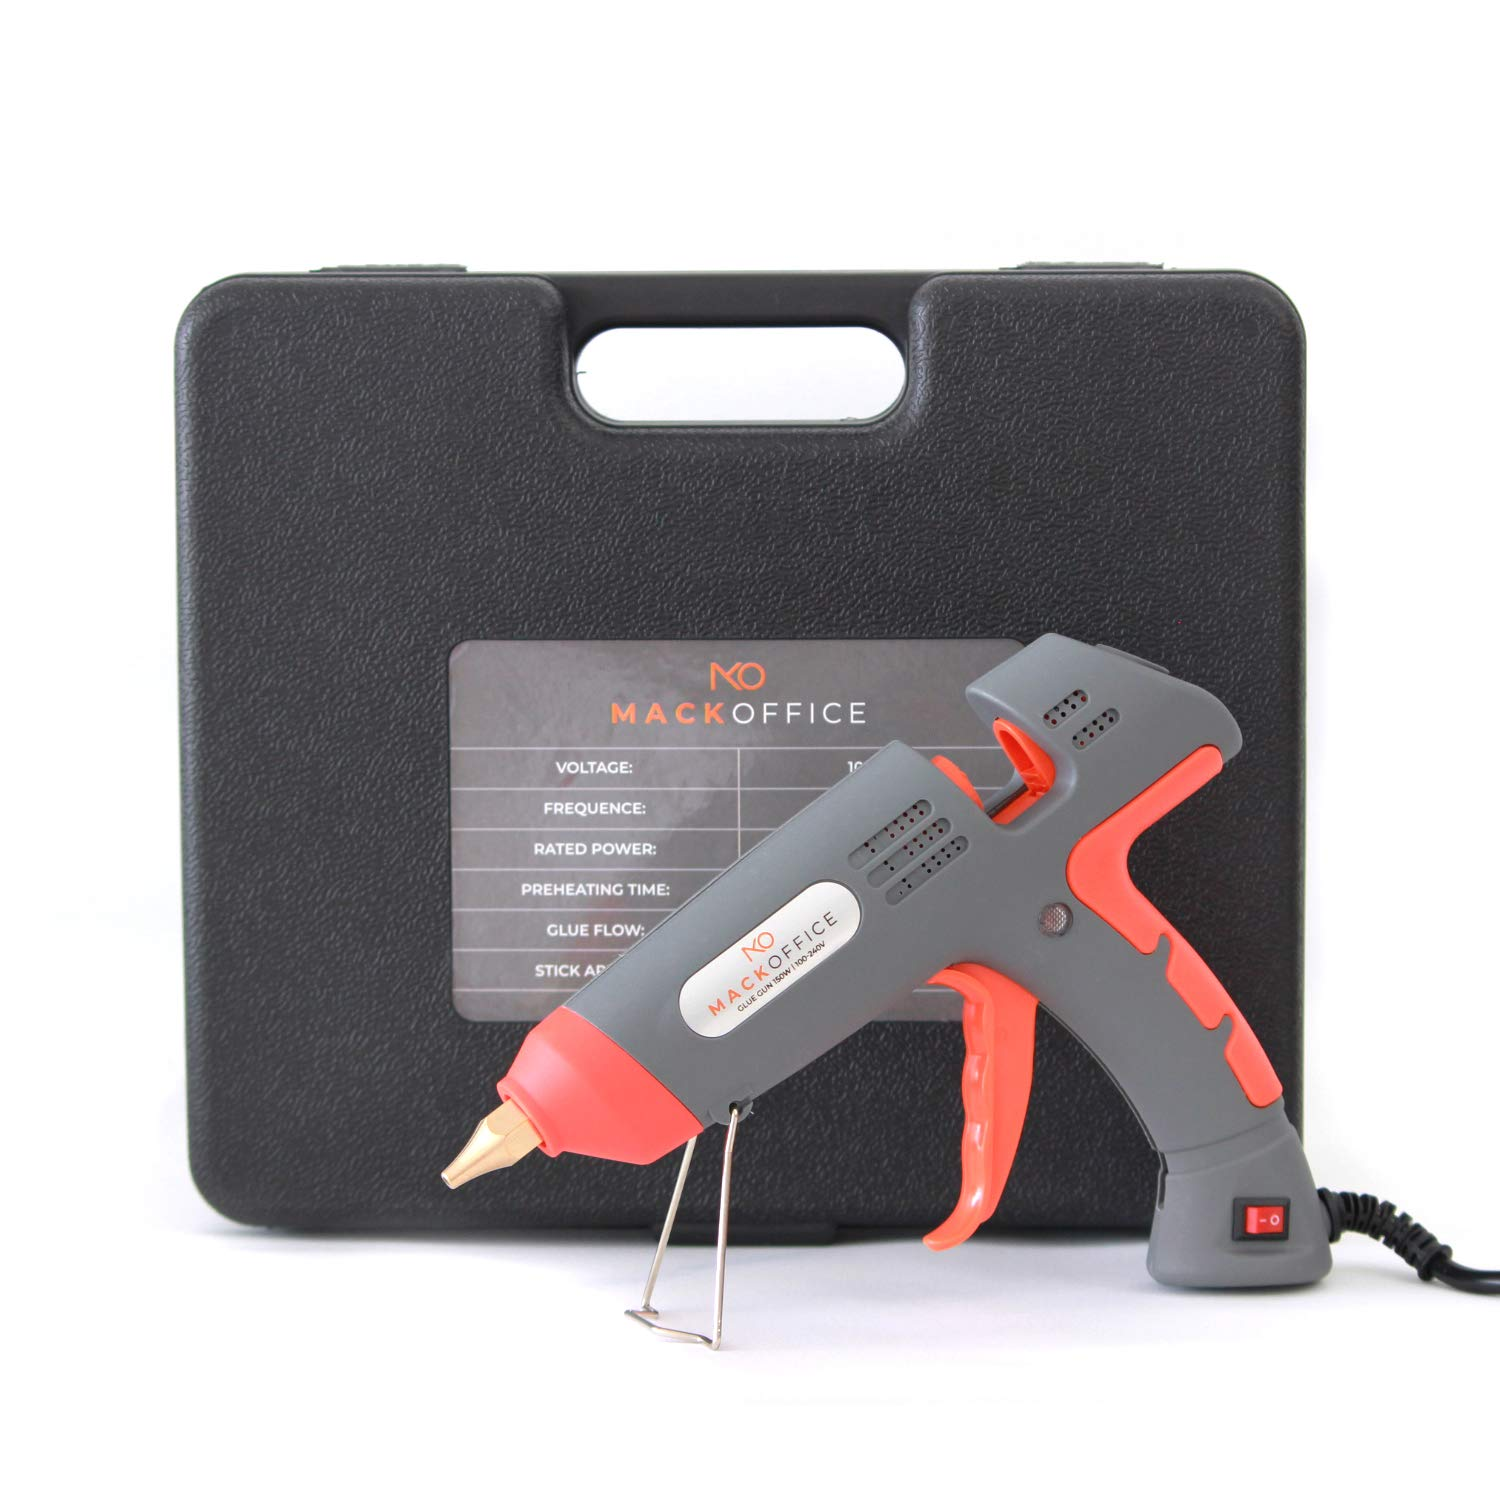 MackOffice Industrial Hot Melt Glue Gun, Profesional Glue Gun 150W, heavy Duty, High Power, Fast Heat with Portable Case, DIY Craft and Quick Repairs Ceramic, Wood, Glass, Toys, Carpet, Cars and more by Mackoffice